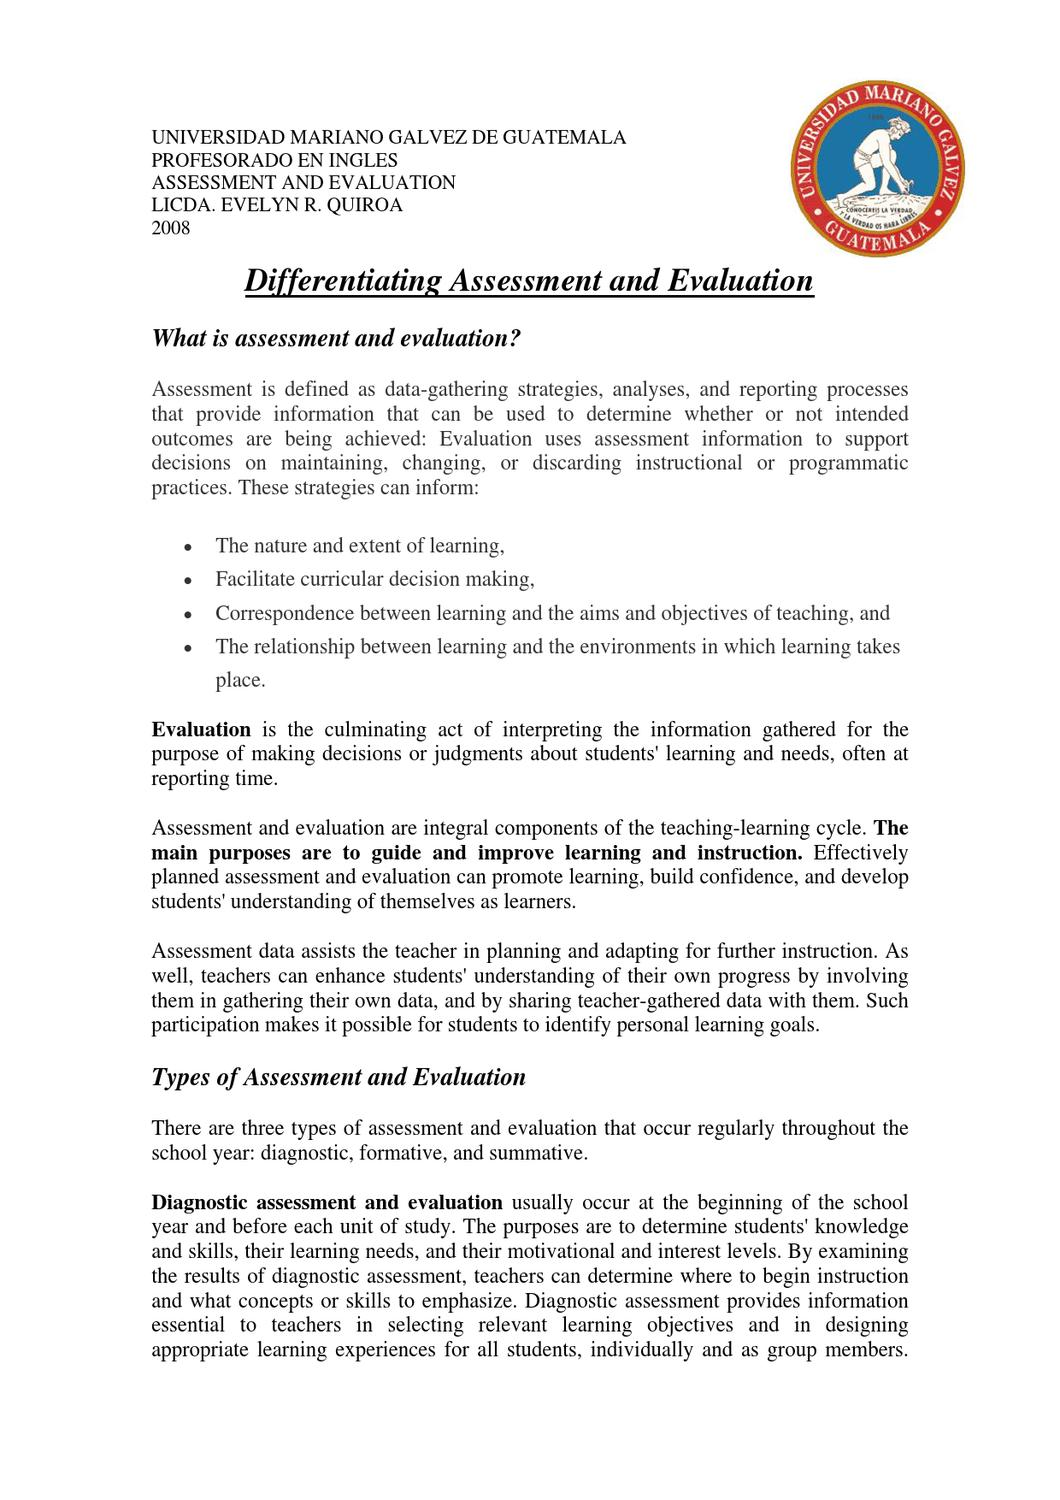 The Difference Between Assessment And Evaluation By Alcira Sanabria